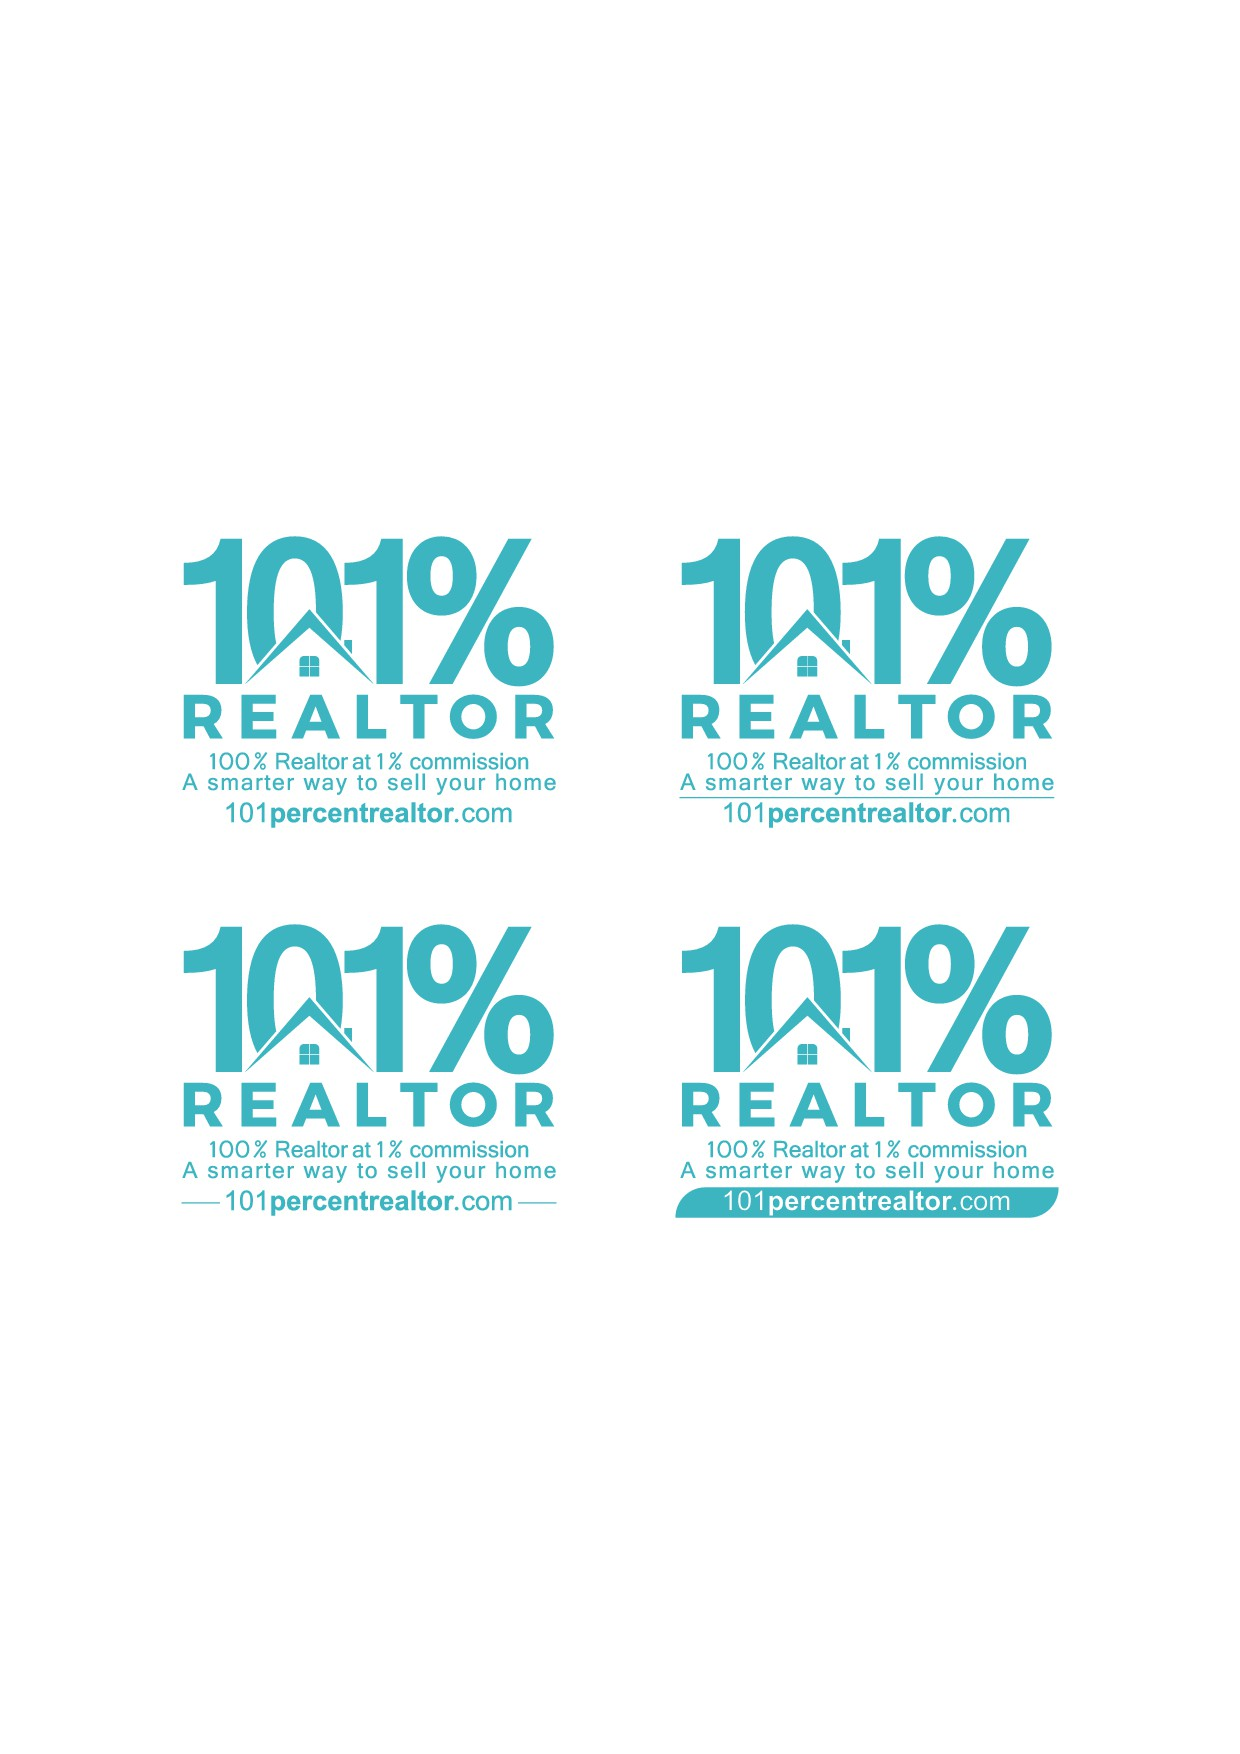 Realtor needs sharp design for company